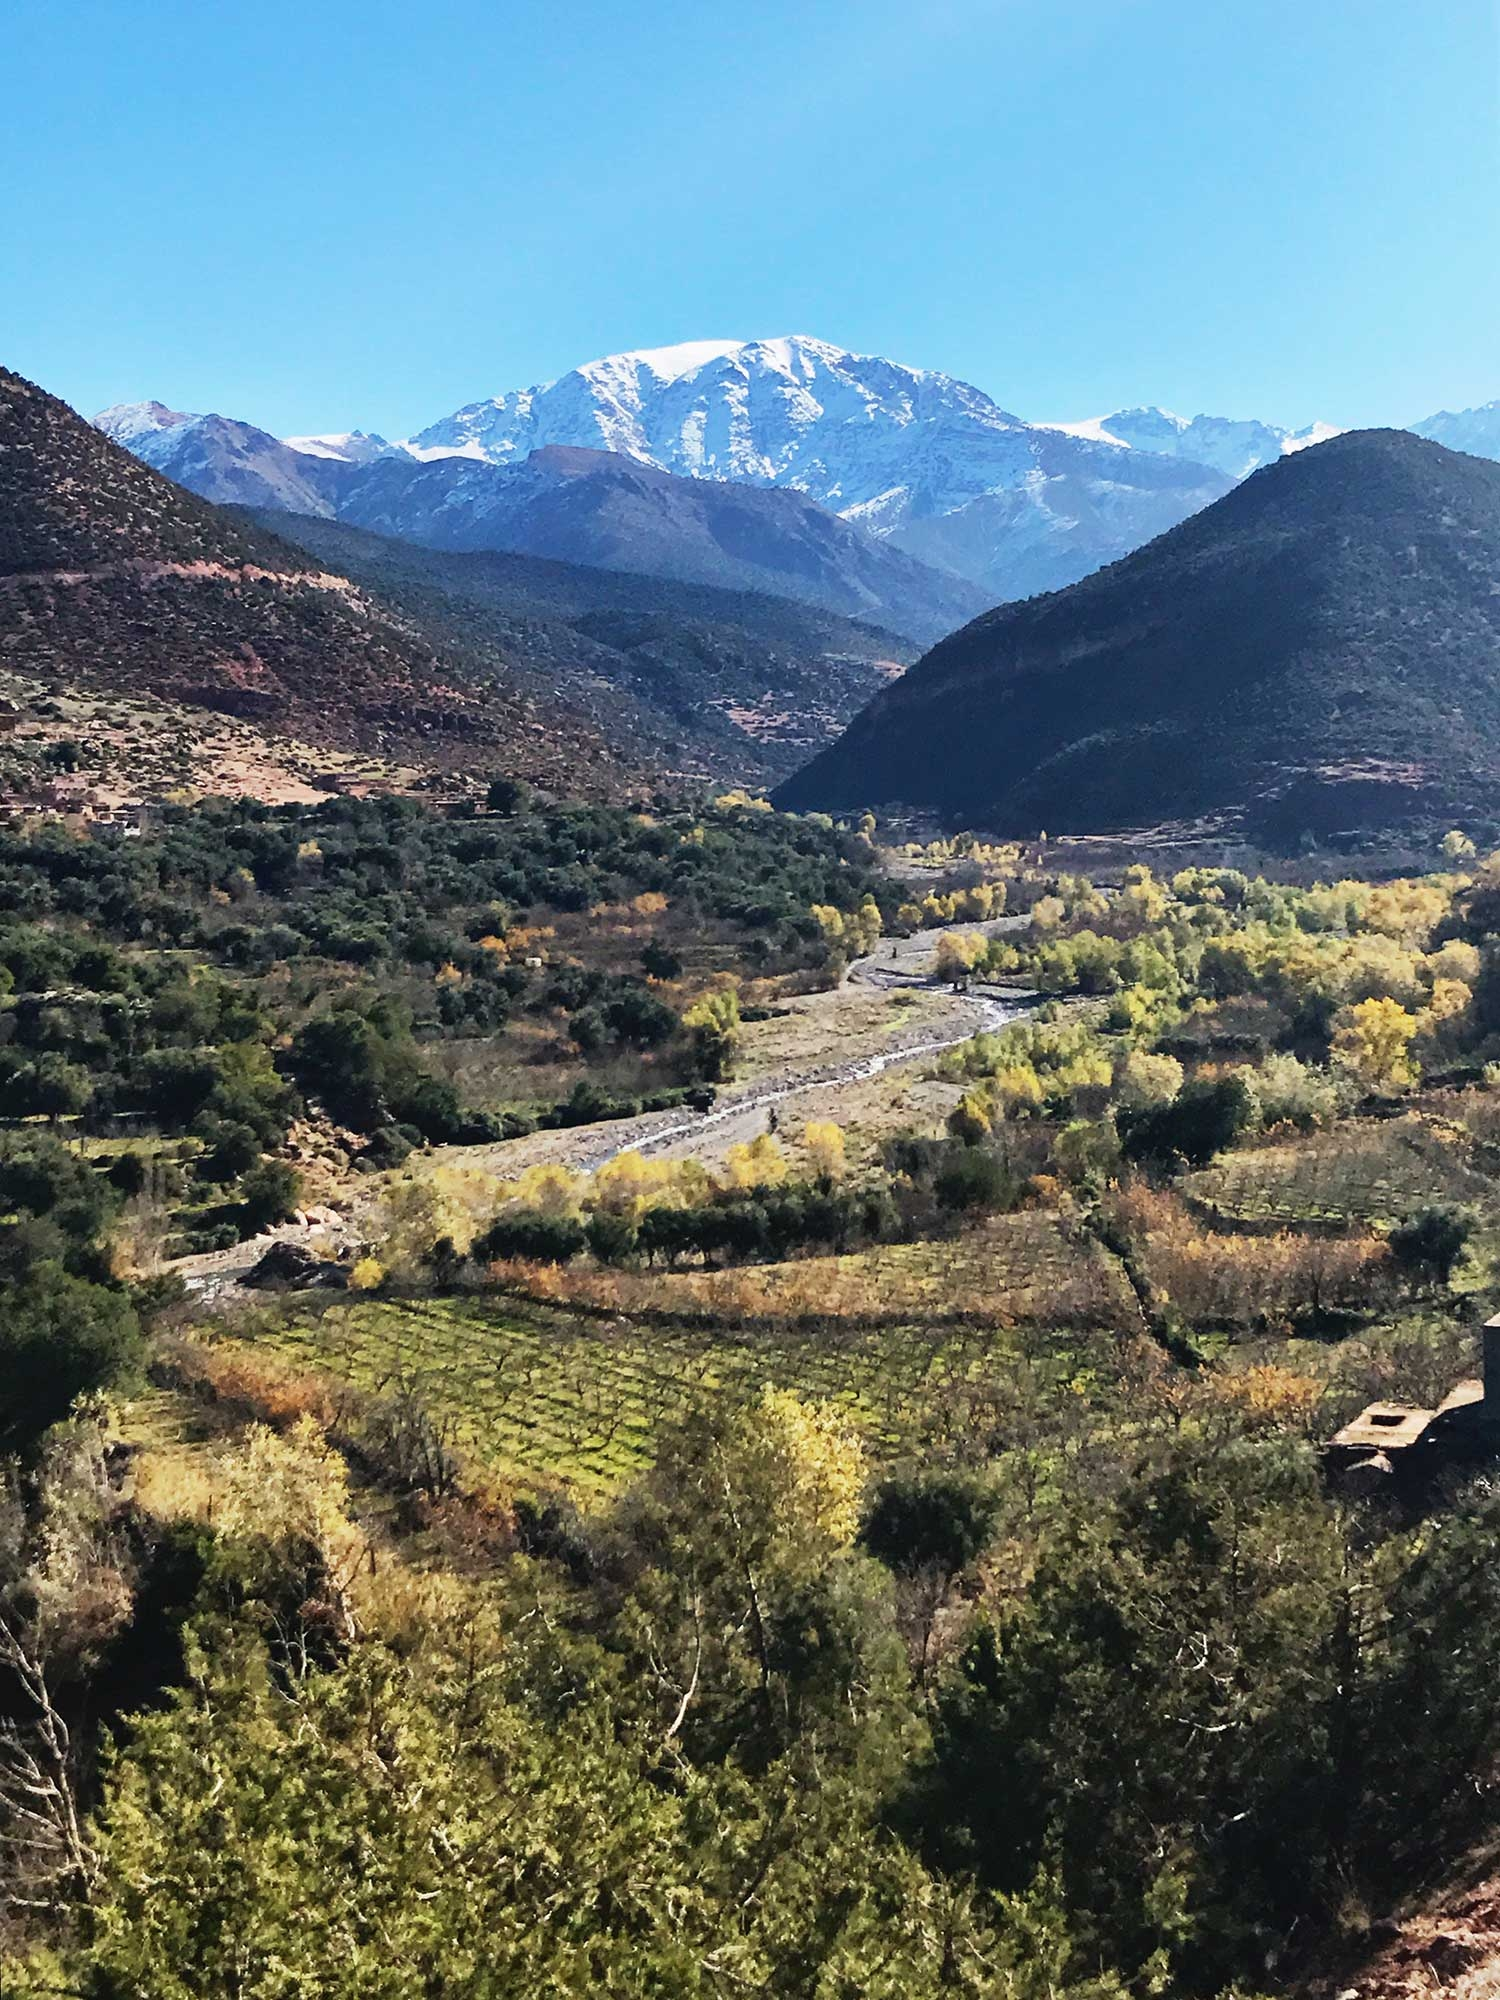 The road into the Atlas Mountains